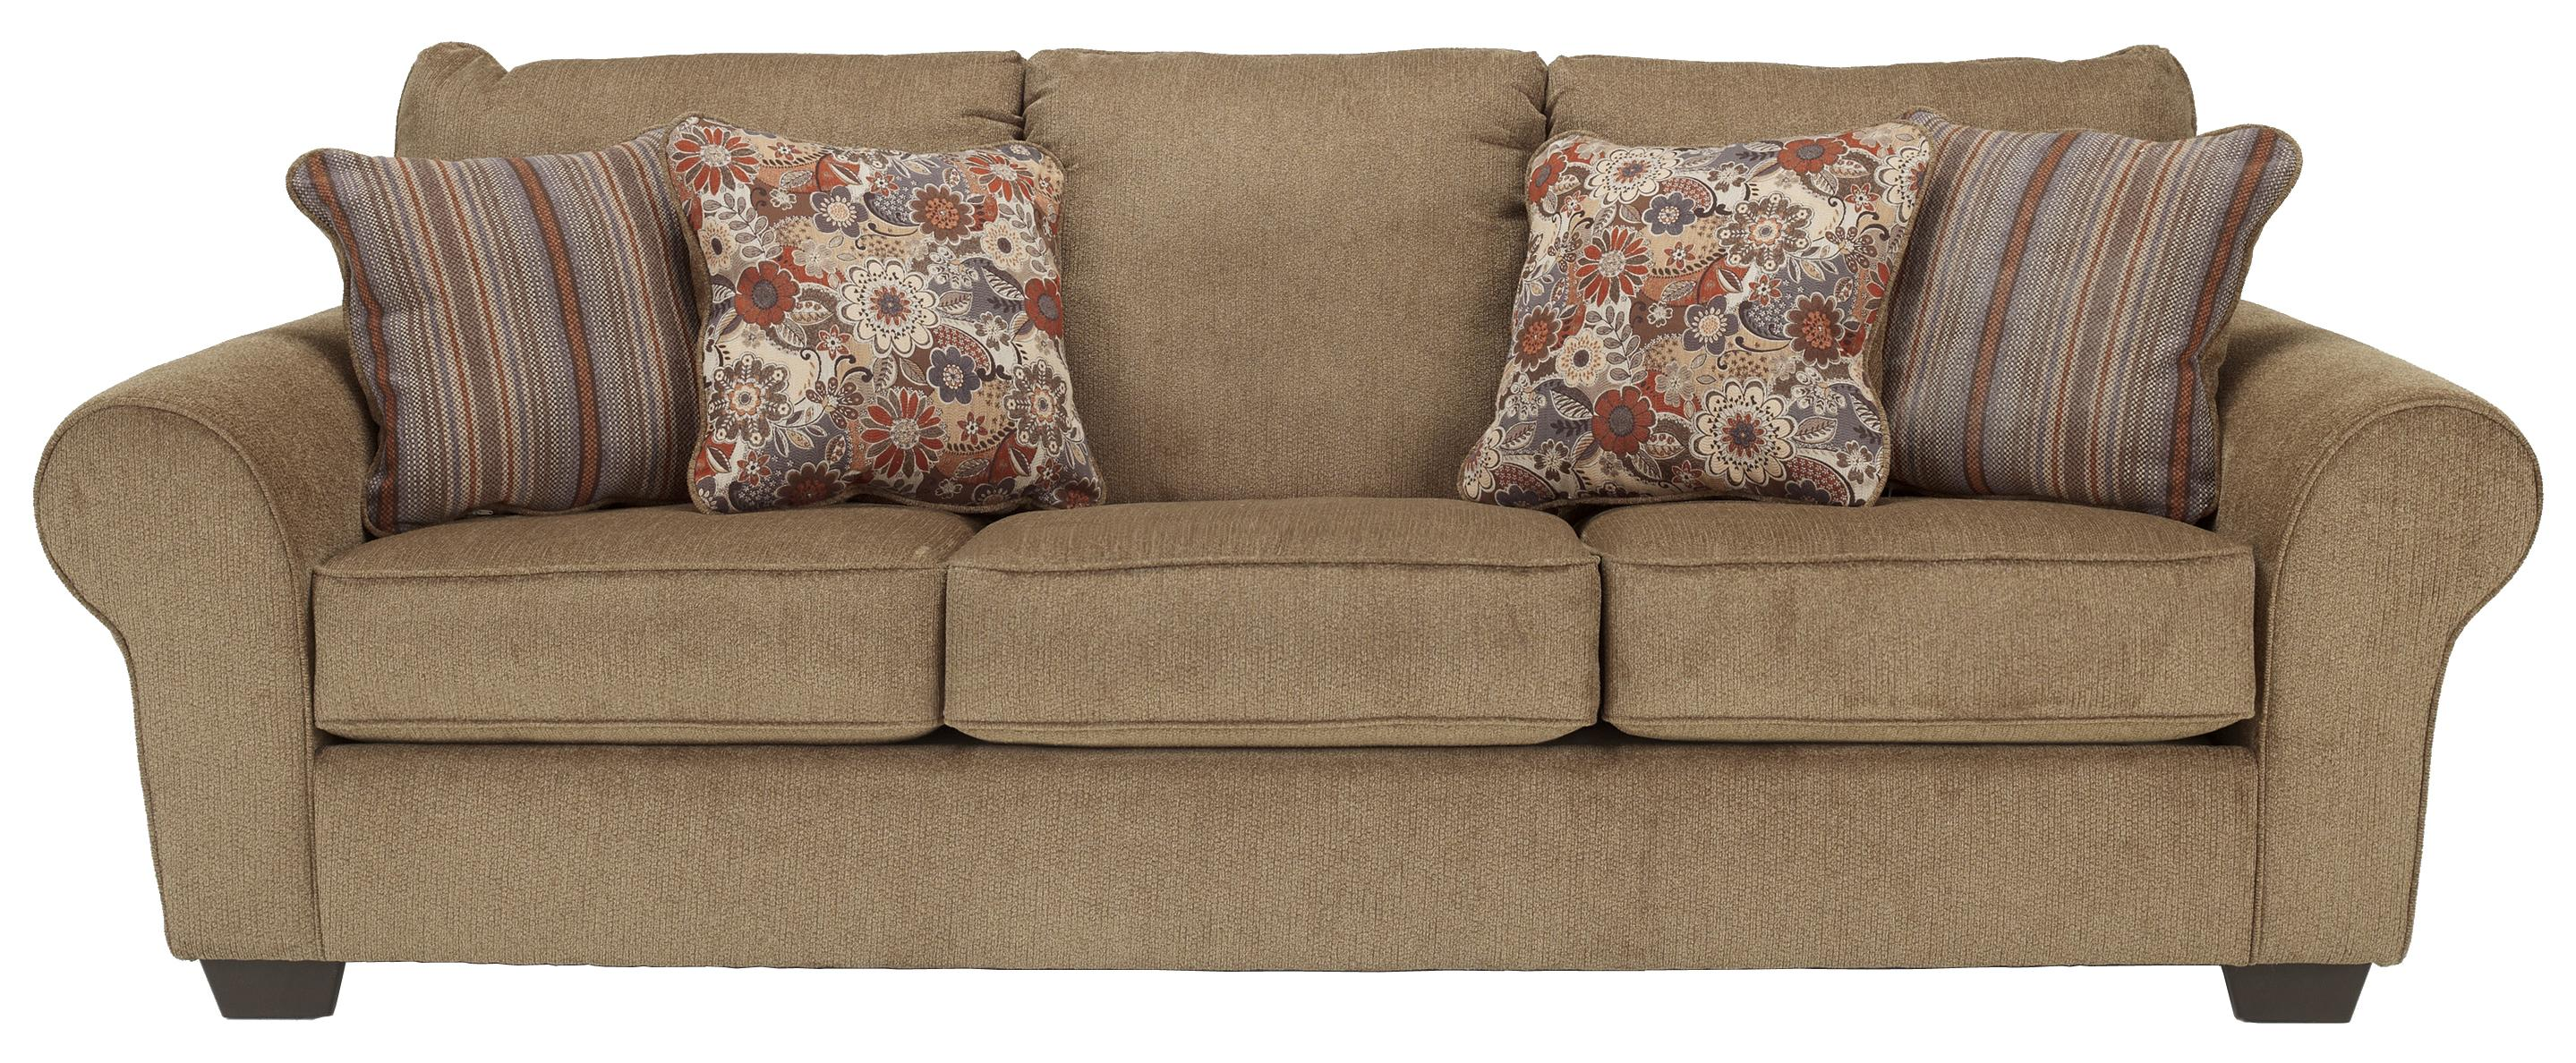 Ashley Furniture Galand - Umber Queen Sofa Sleeper - Item Number: 1170039